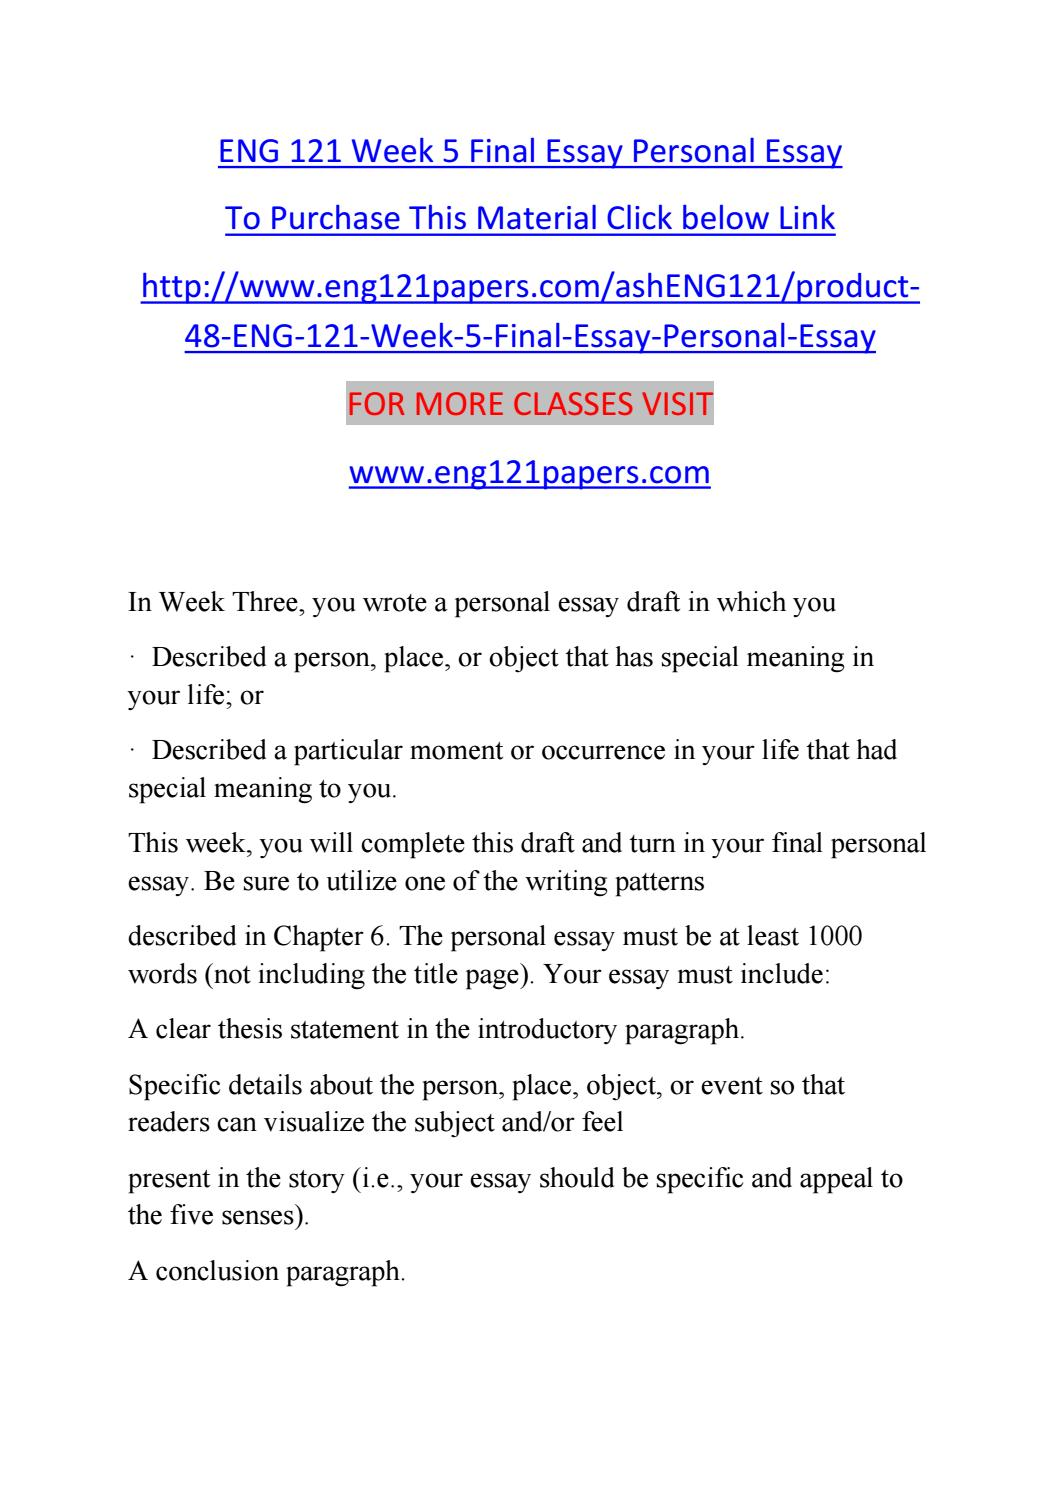 Sample of a five paragraph essay with an explicit thesis